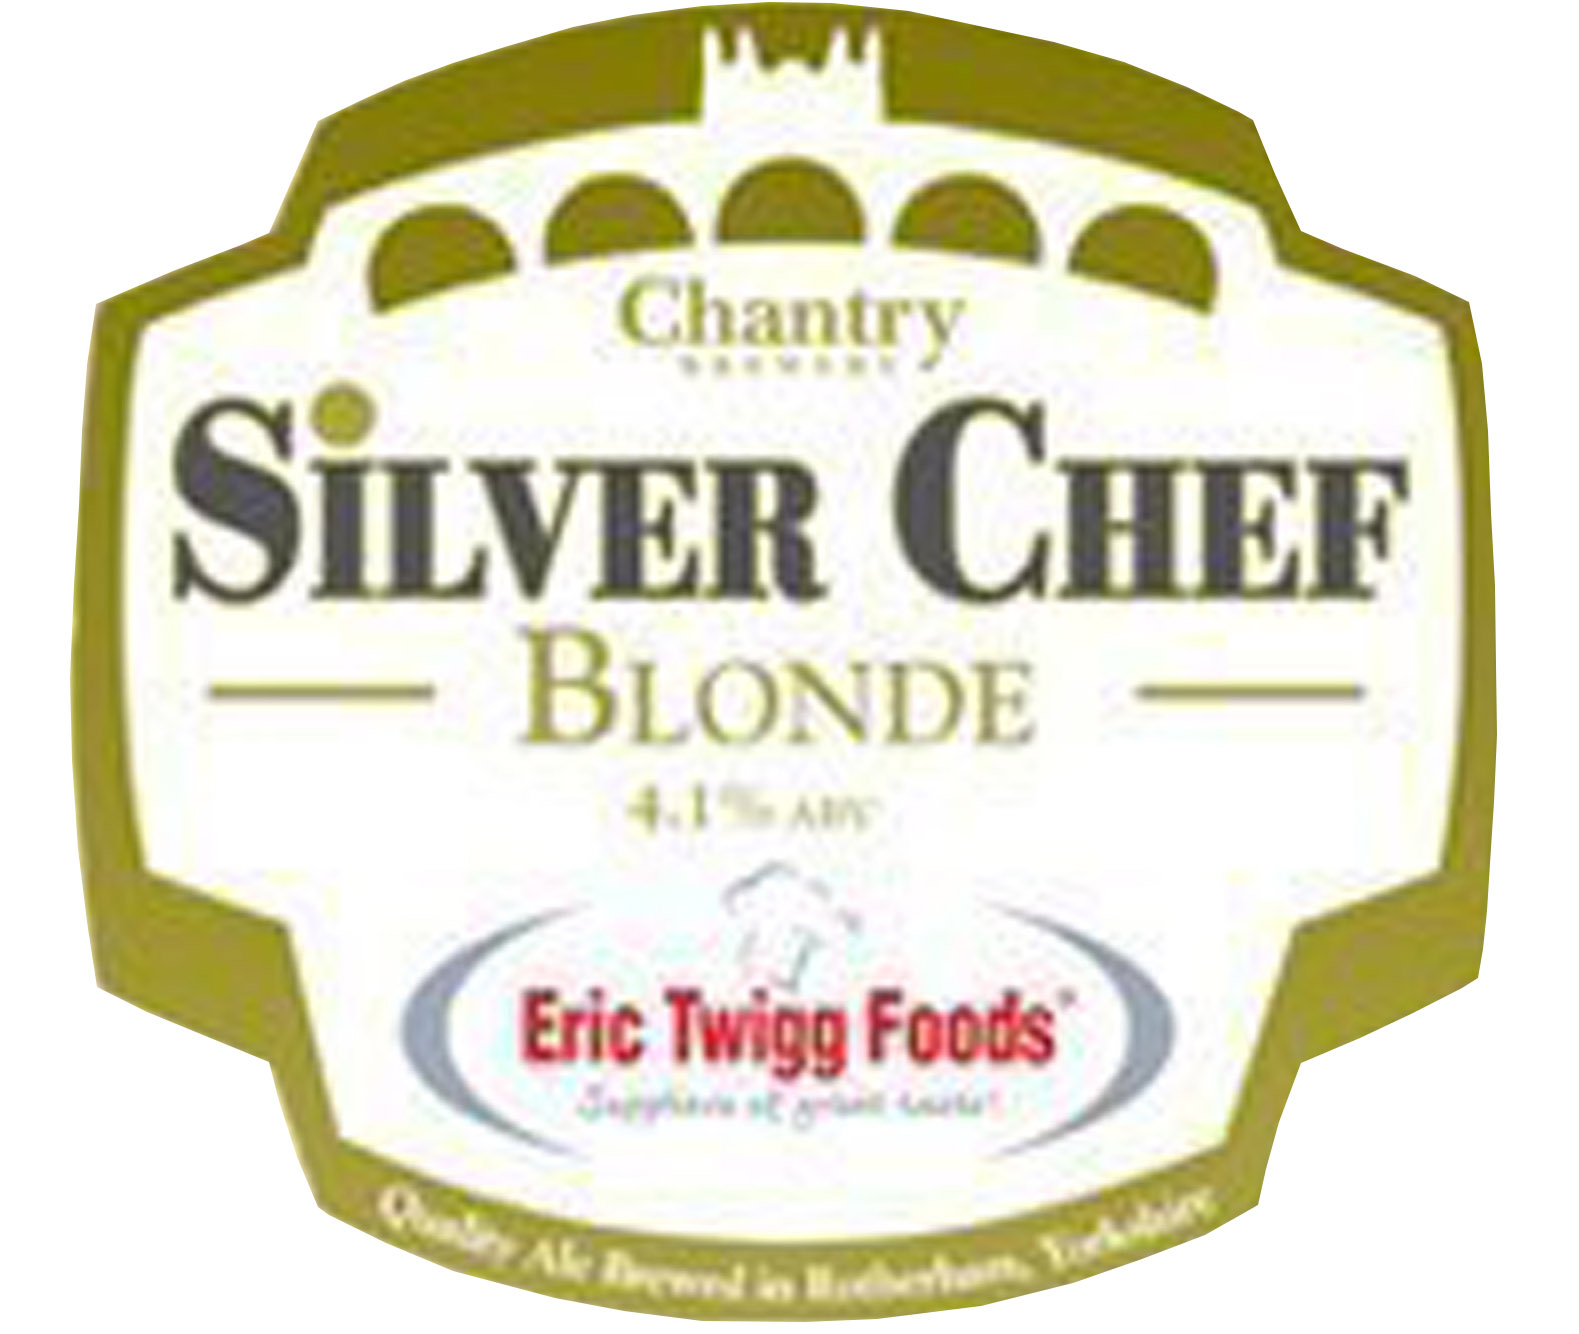 Chantry Brewery Silver Chef Blonde